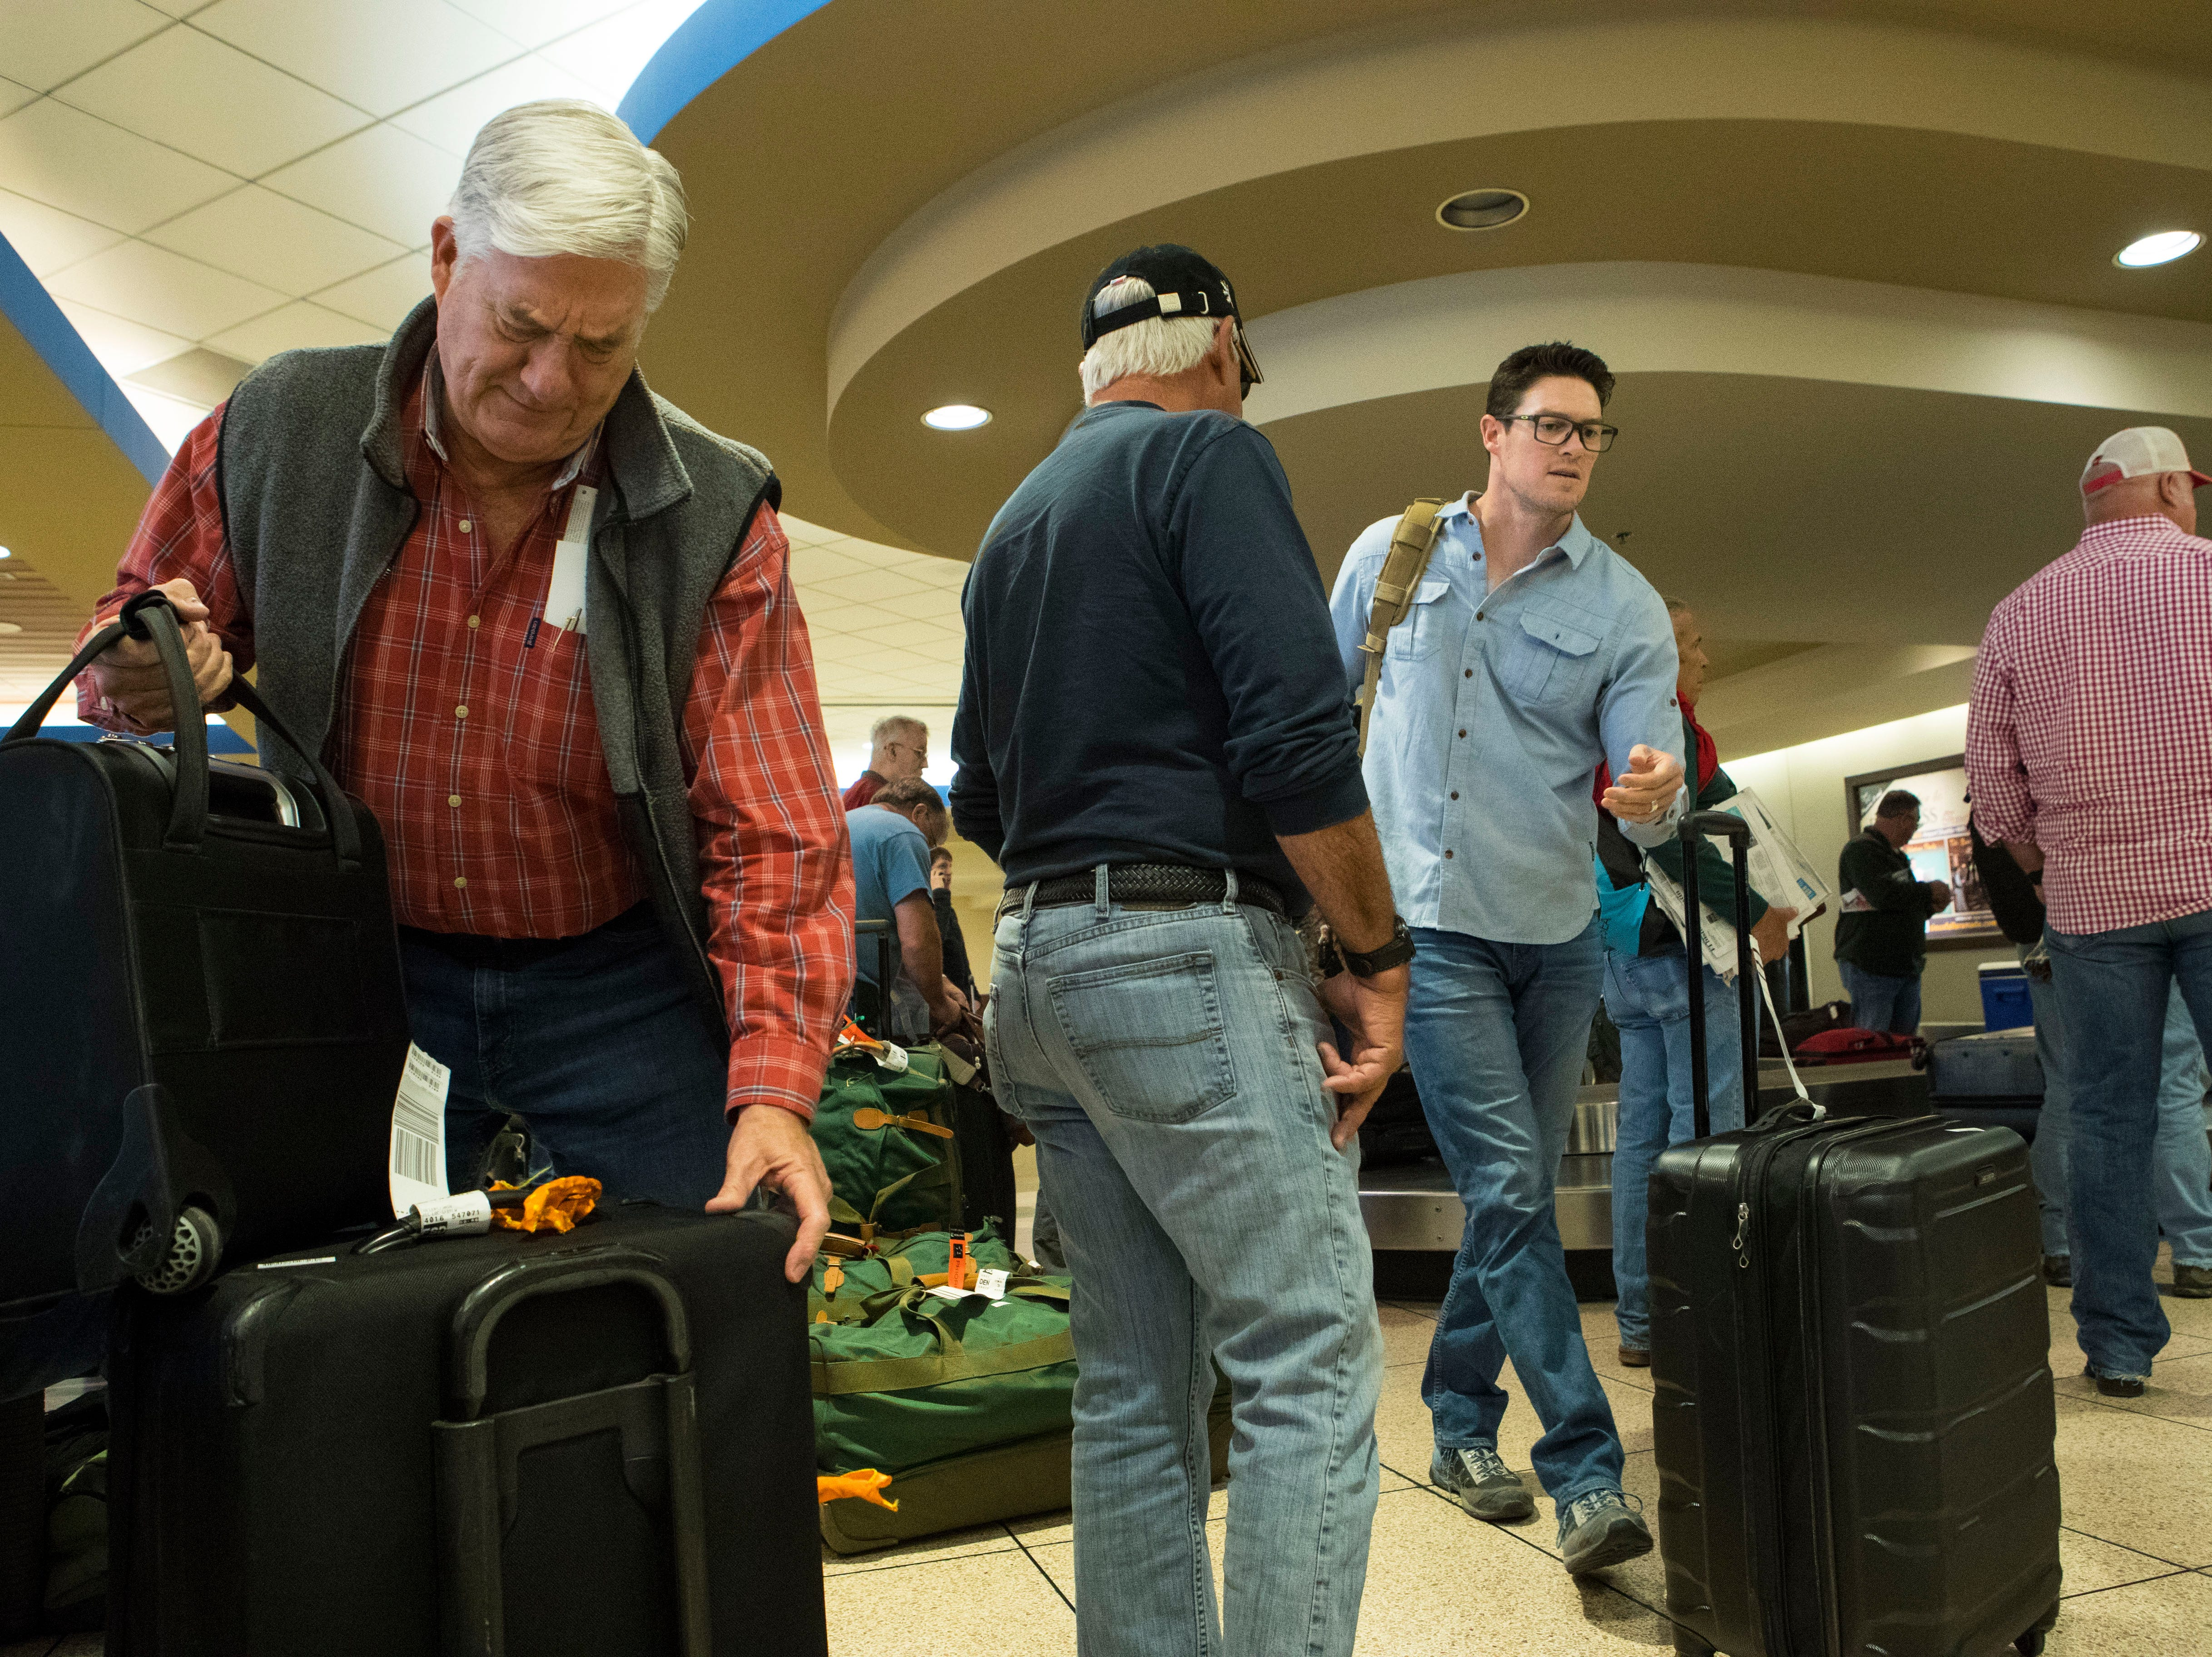 Pheasant hunters pick up their luggage at Sioux Falls Regional Airport Friday, Oct. 19, 2018.